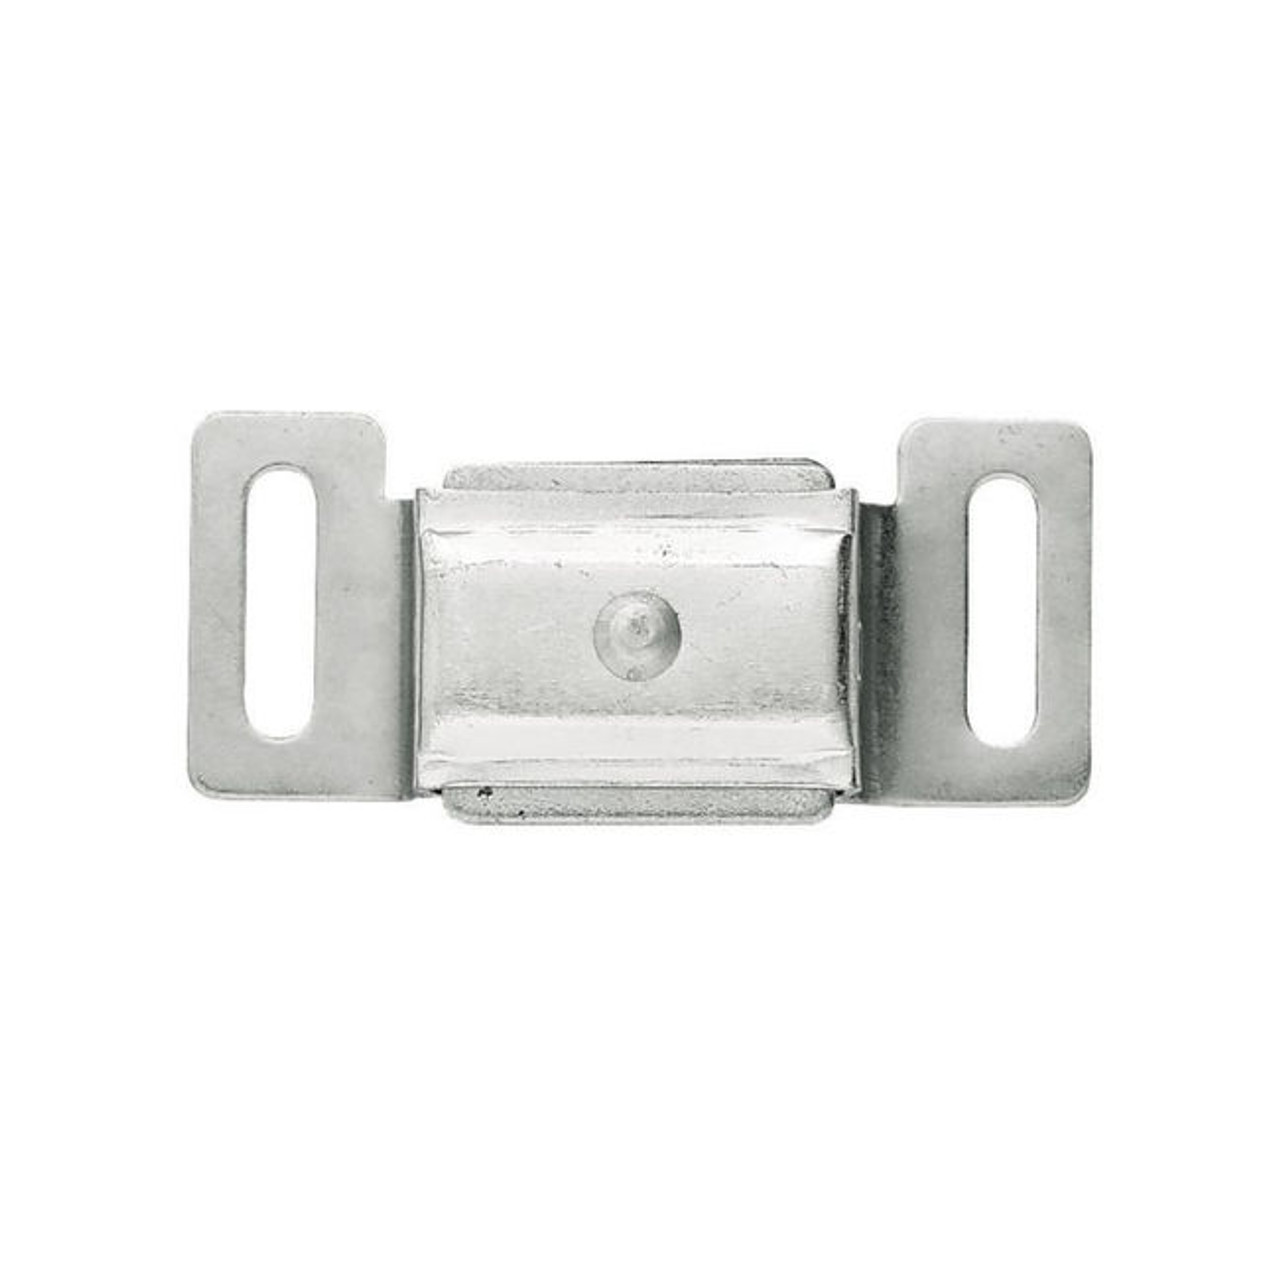 C080X0V-W  Heavy Duty Magnetic Catch w// Strike White Lot of 5